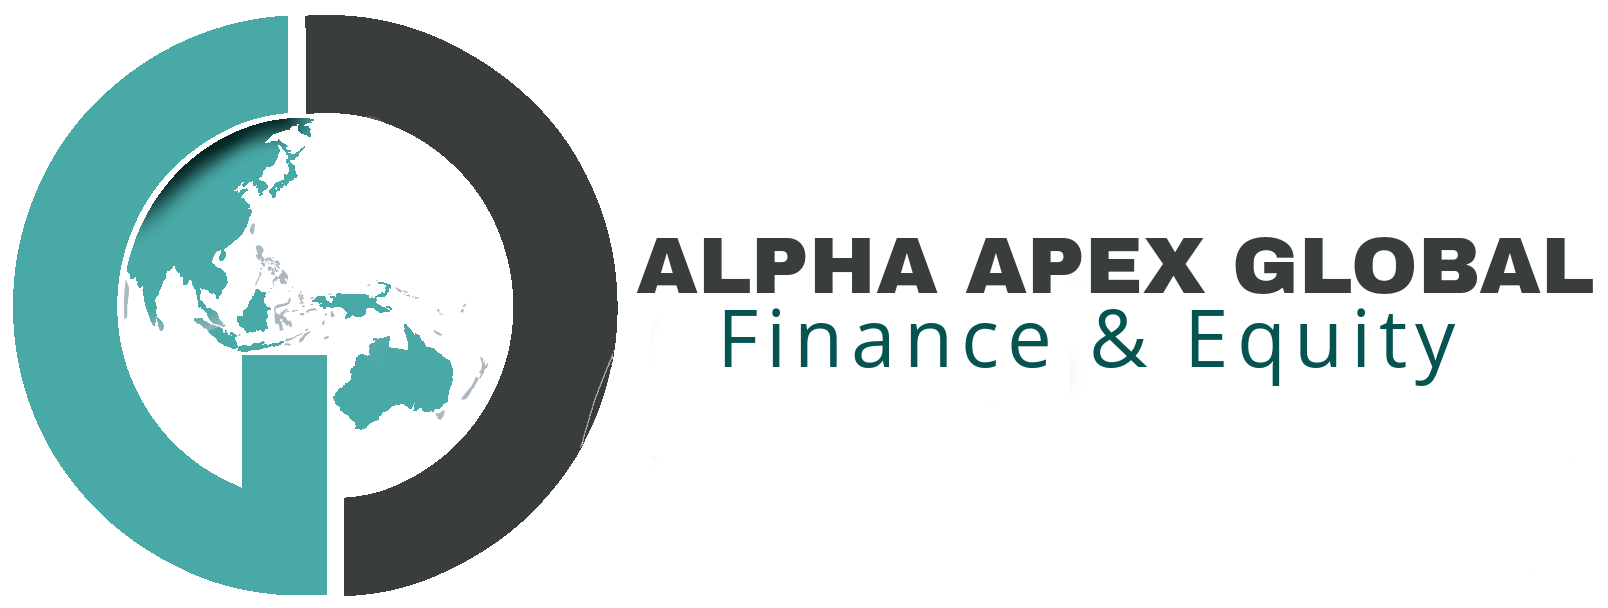 Post Alibaba, Alpha Apex Global Expects More Record-Breaking IPOs, Welcomes New Investors